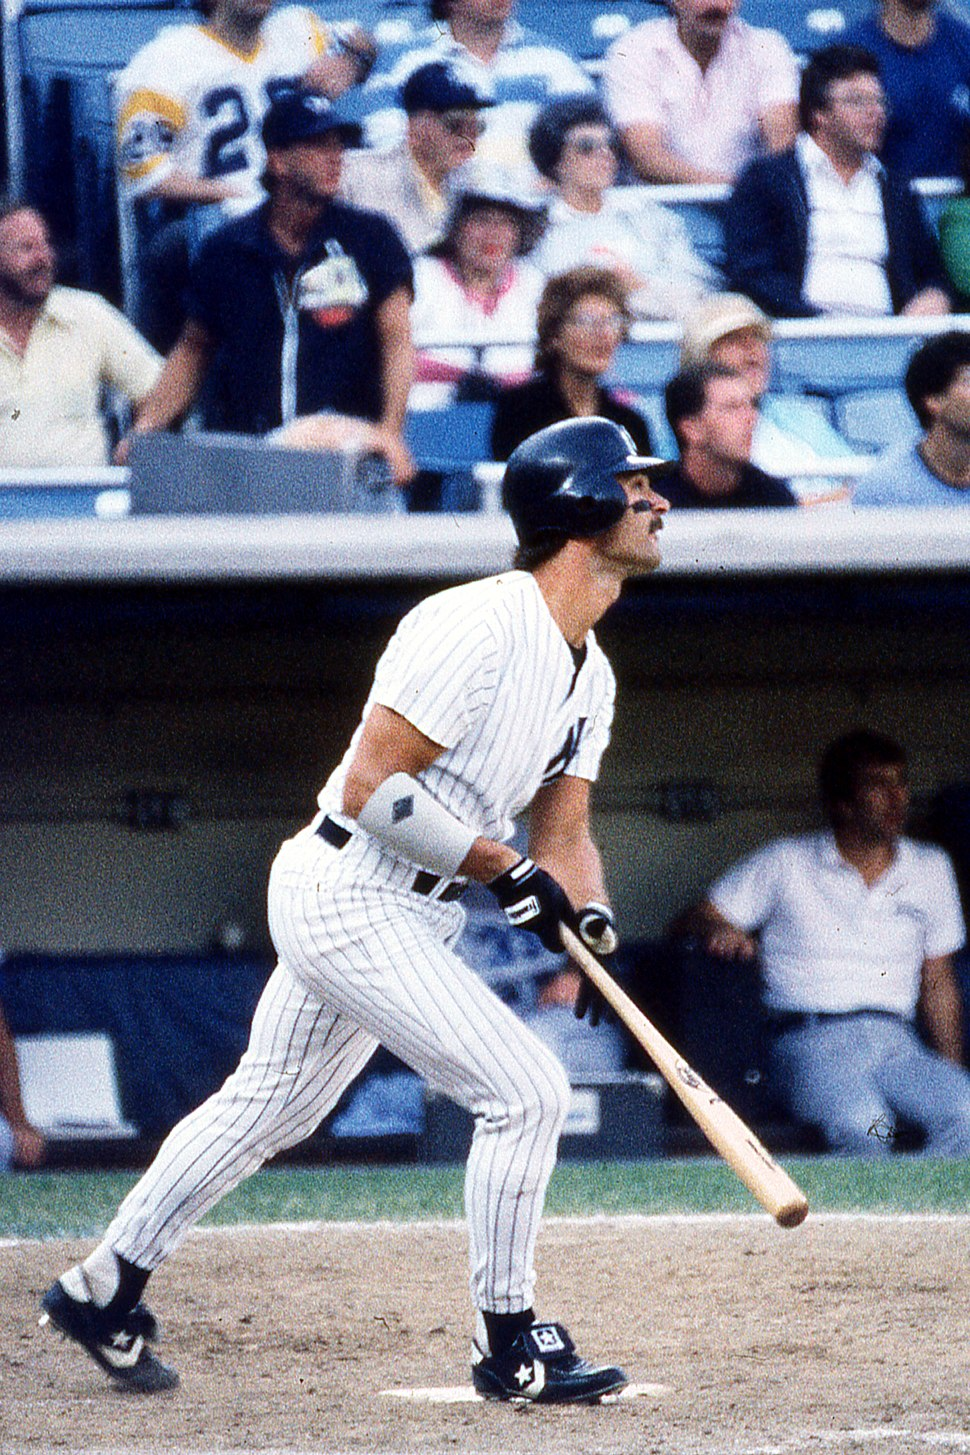 Don Mattingly playing for the New York Yankees at Yankee Stadium on August 19, 1988